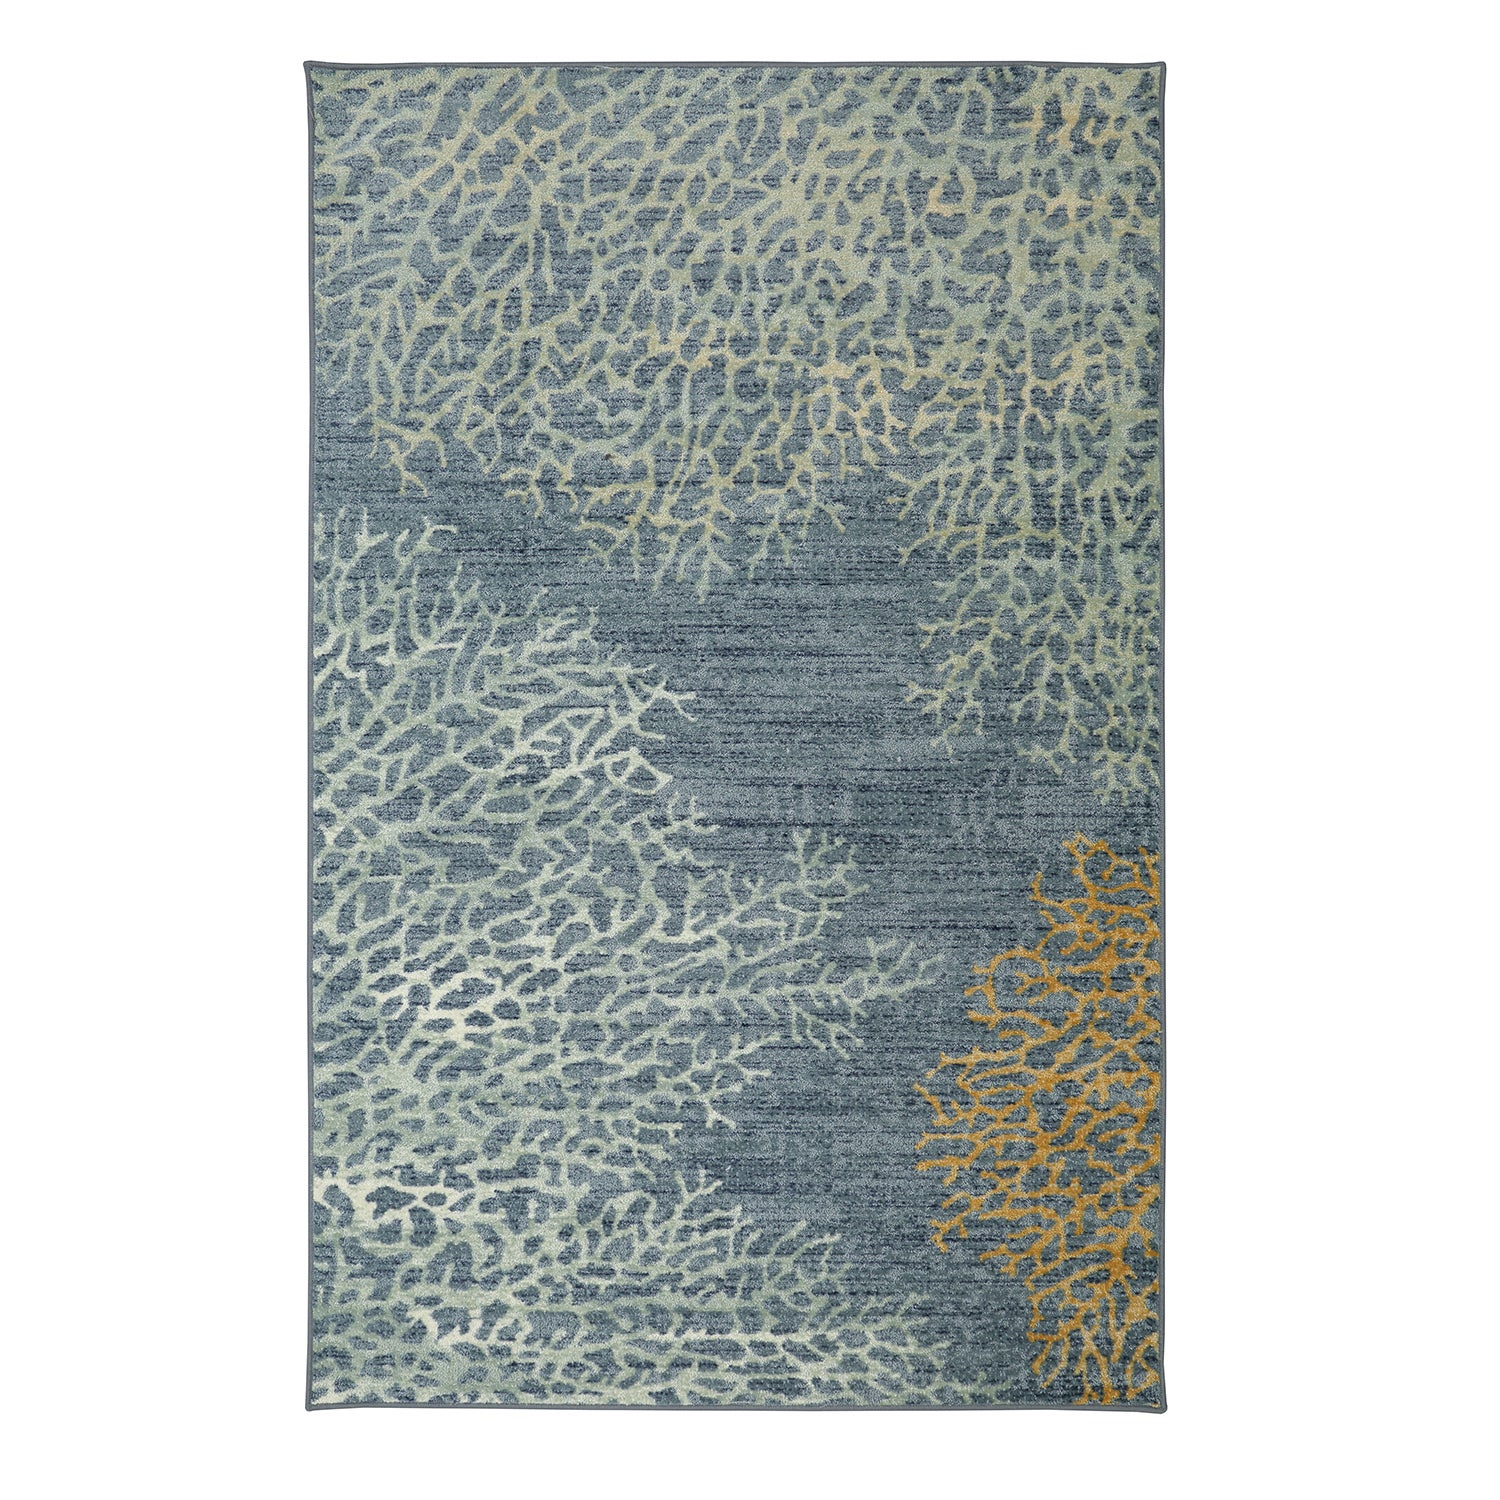 Havenside Home Kennebunkport Coral Reef Area Rug 7 6 x 10 Free